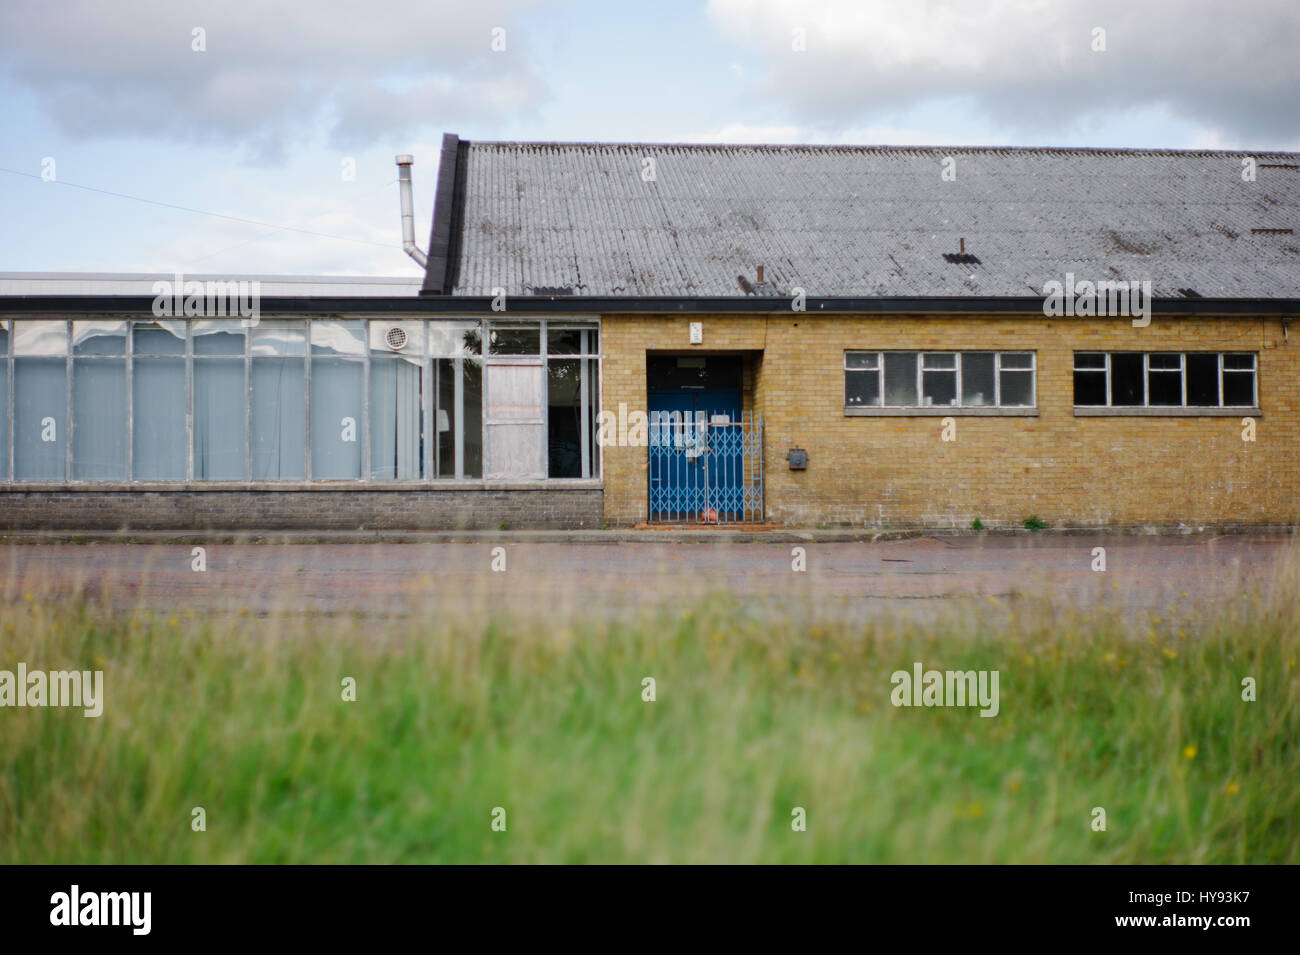 Boarded-up commercial building showing tough economic times. - Stock Image